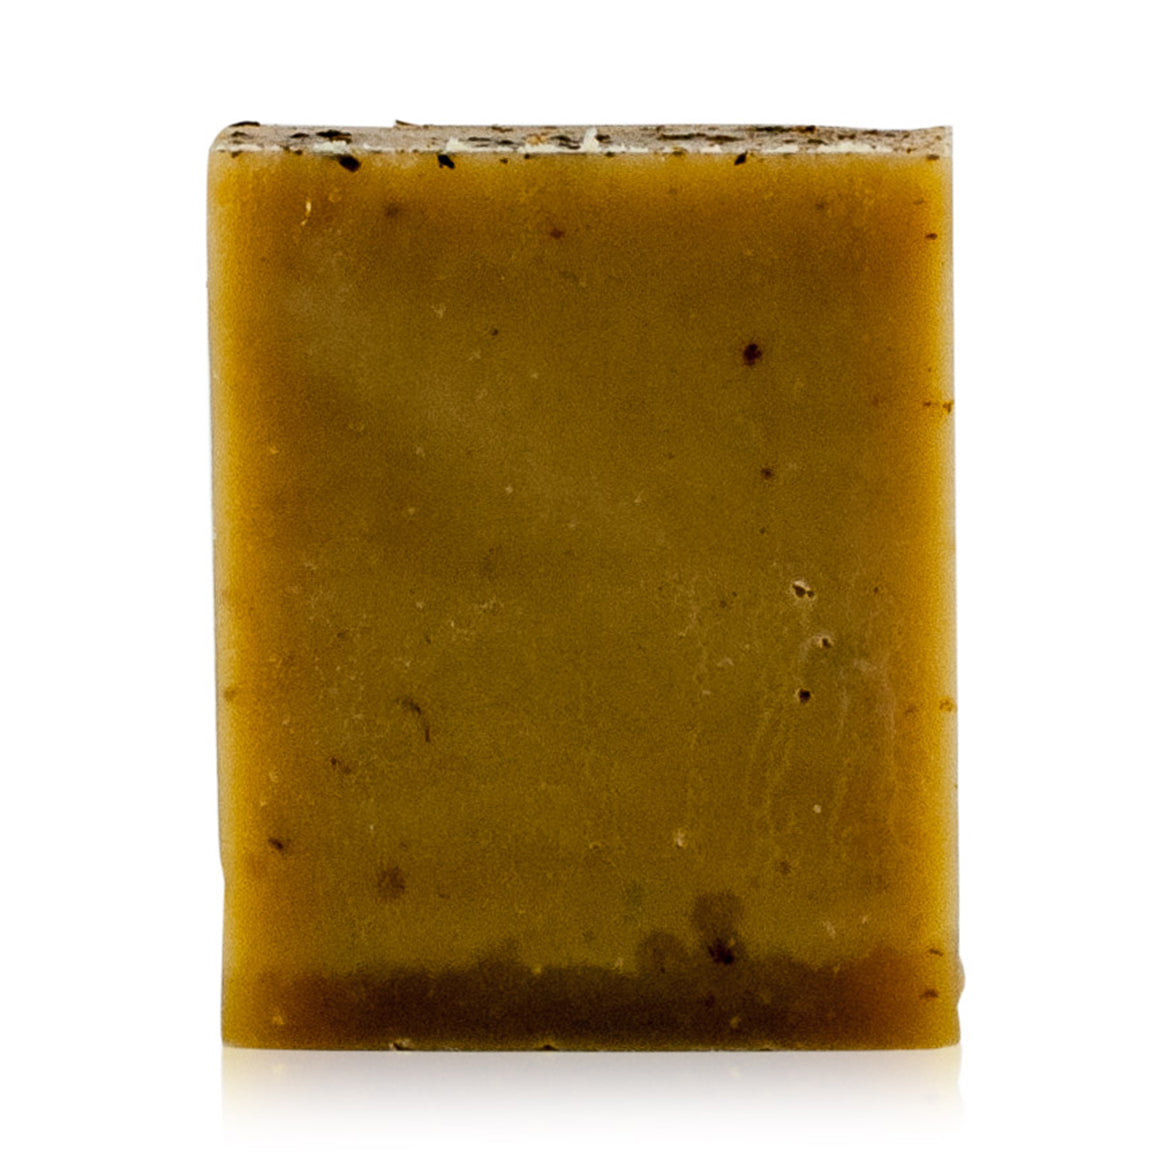 Natural vegan skincare Elderflower, Grapefruit and Apricot mineral soap bar handmade by WiDEYE in Rye.